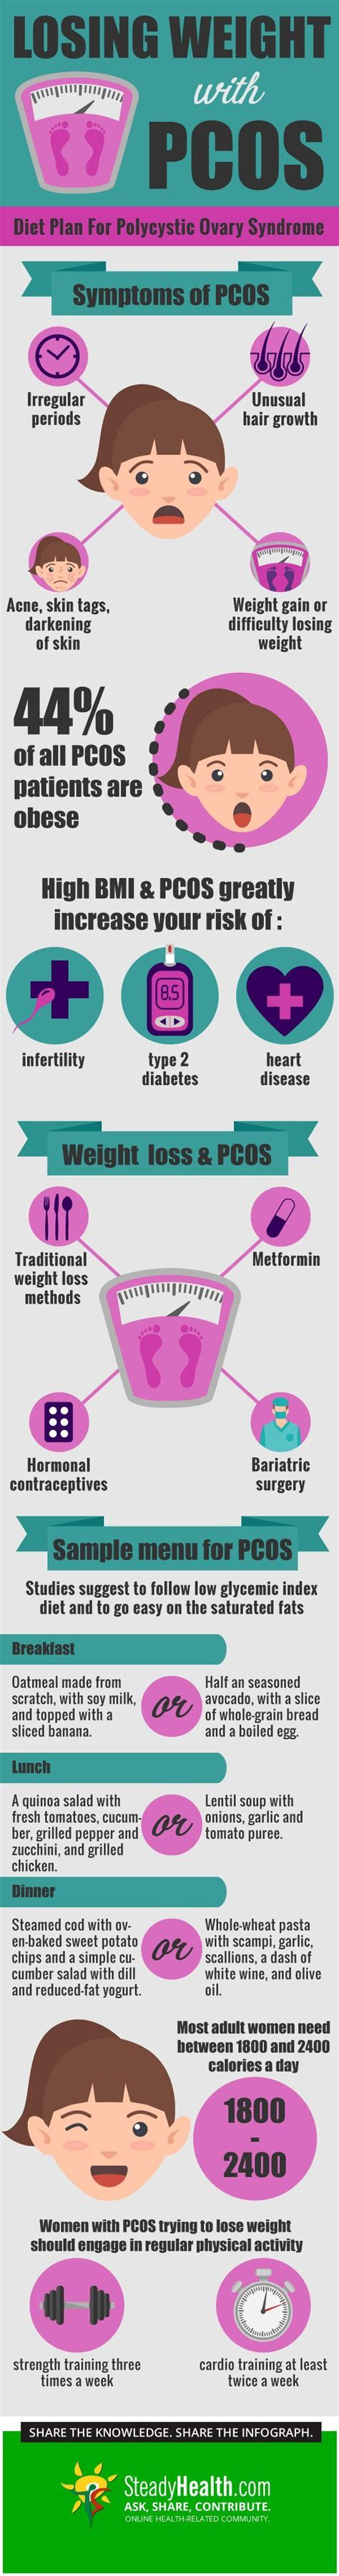 losing weight with pcos diet plan for polycystic ovary